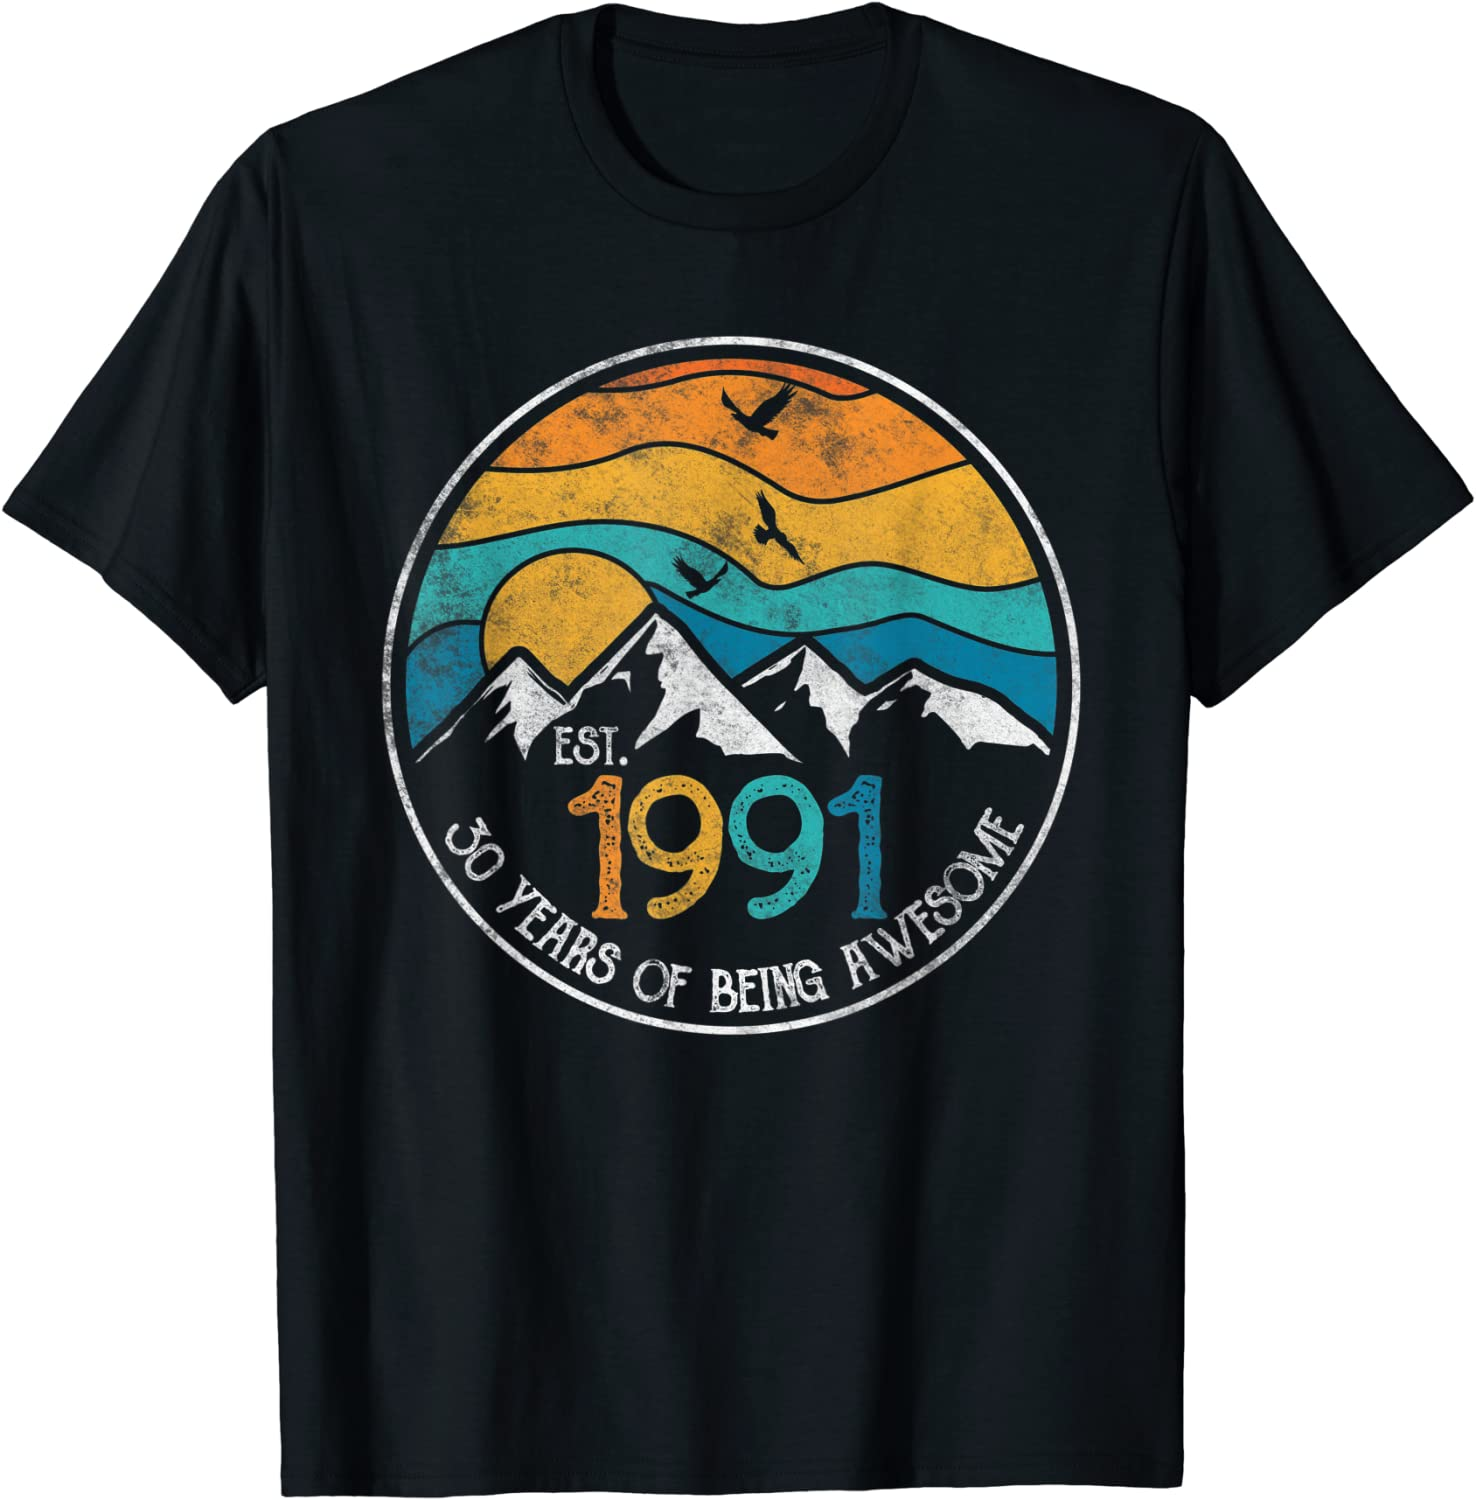 Est. 1991 30 Years of Being Awesome Vintage 30th Birthday T-Shirt